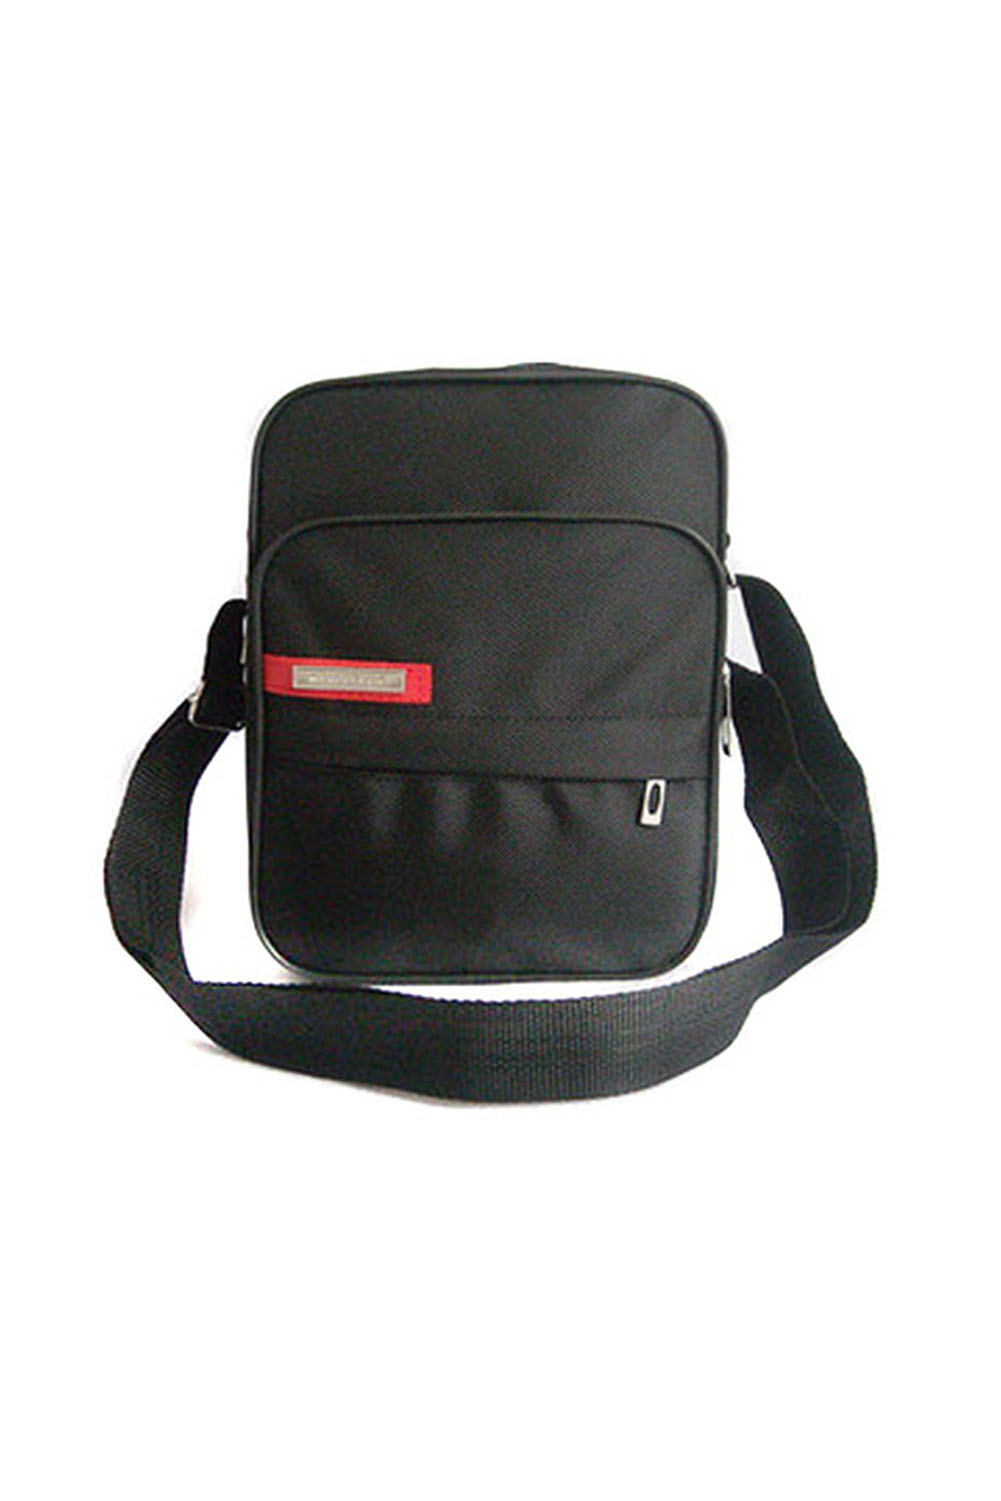 6f88a94077 Black Men s Shoulder bag Messenger Bag DT 190268128216